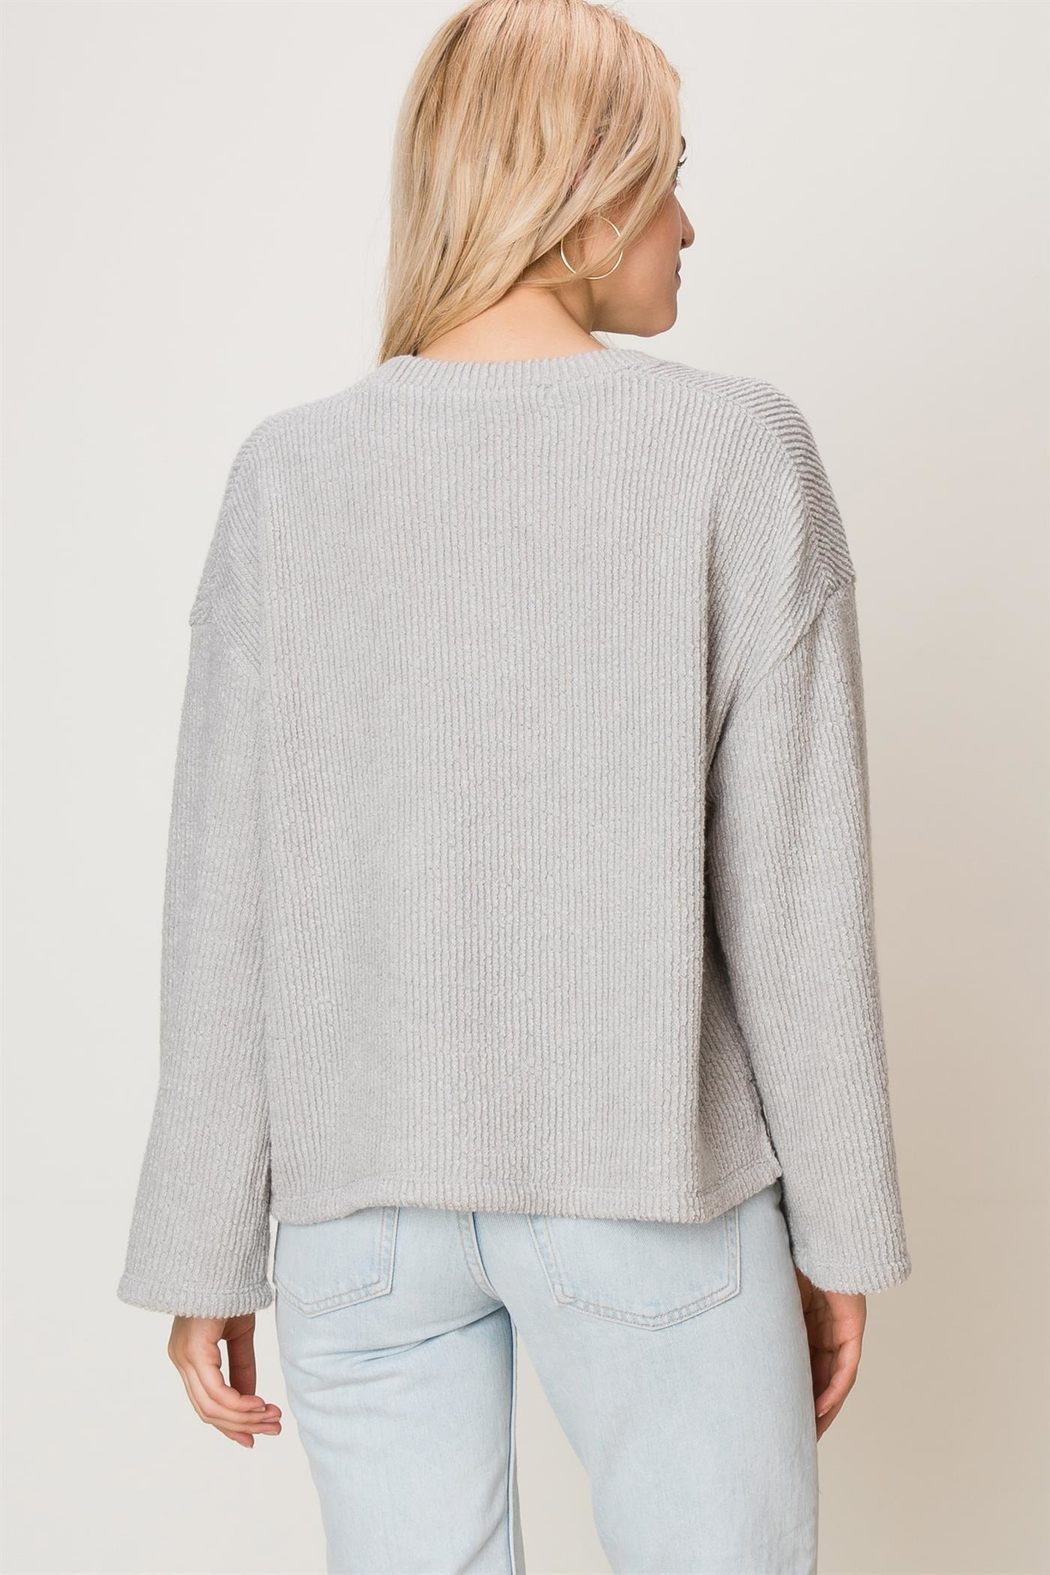 HYFVE Ribbed Knit Top - Front Full Image